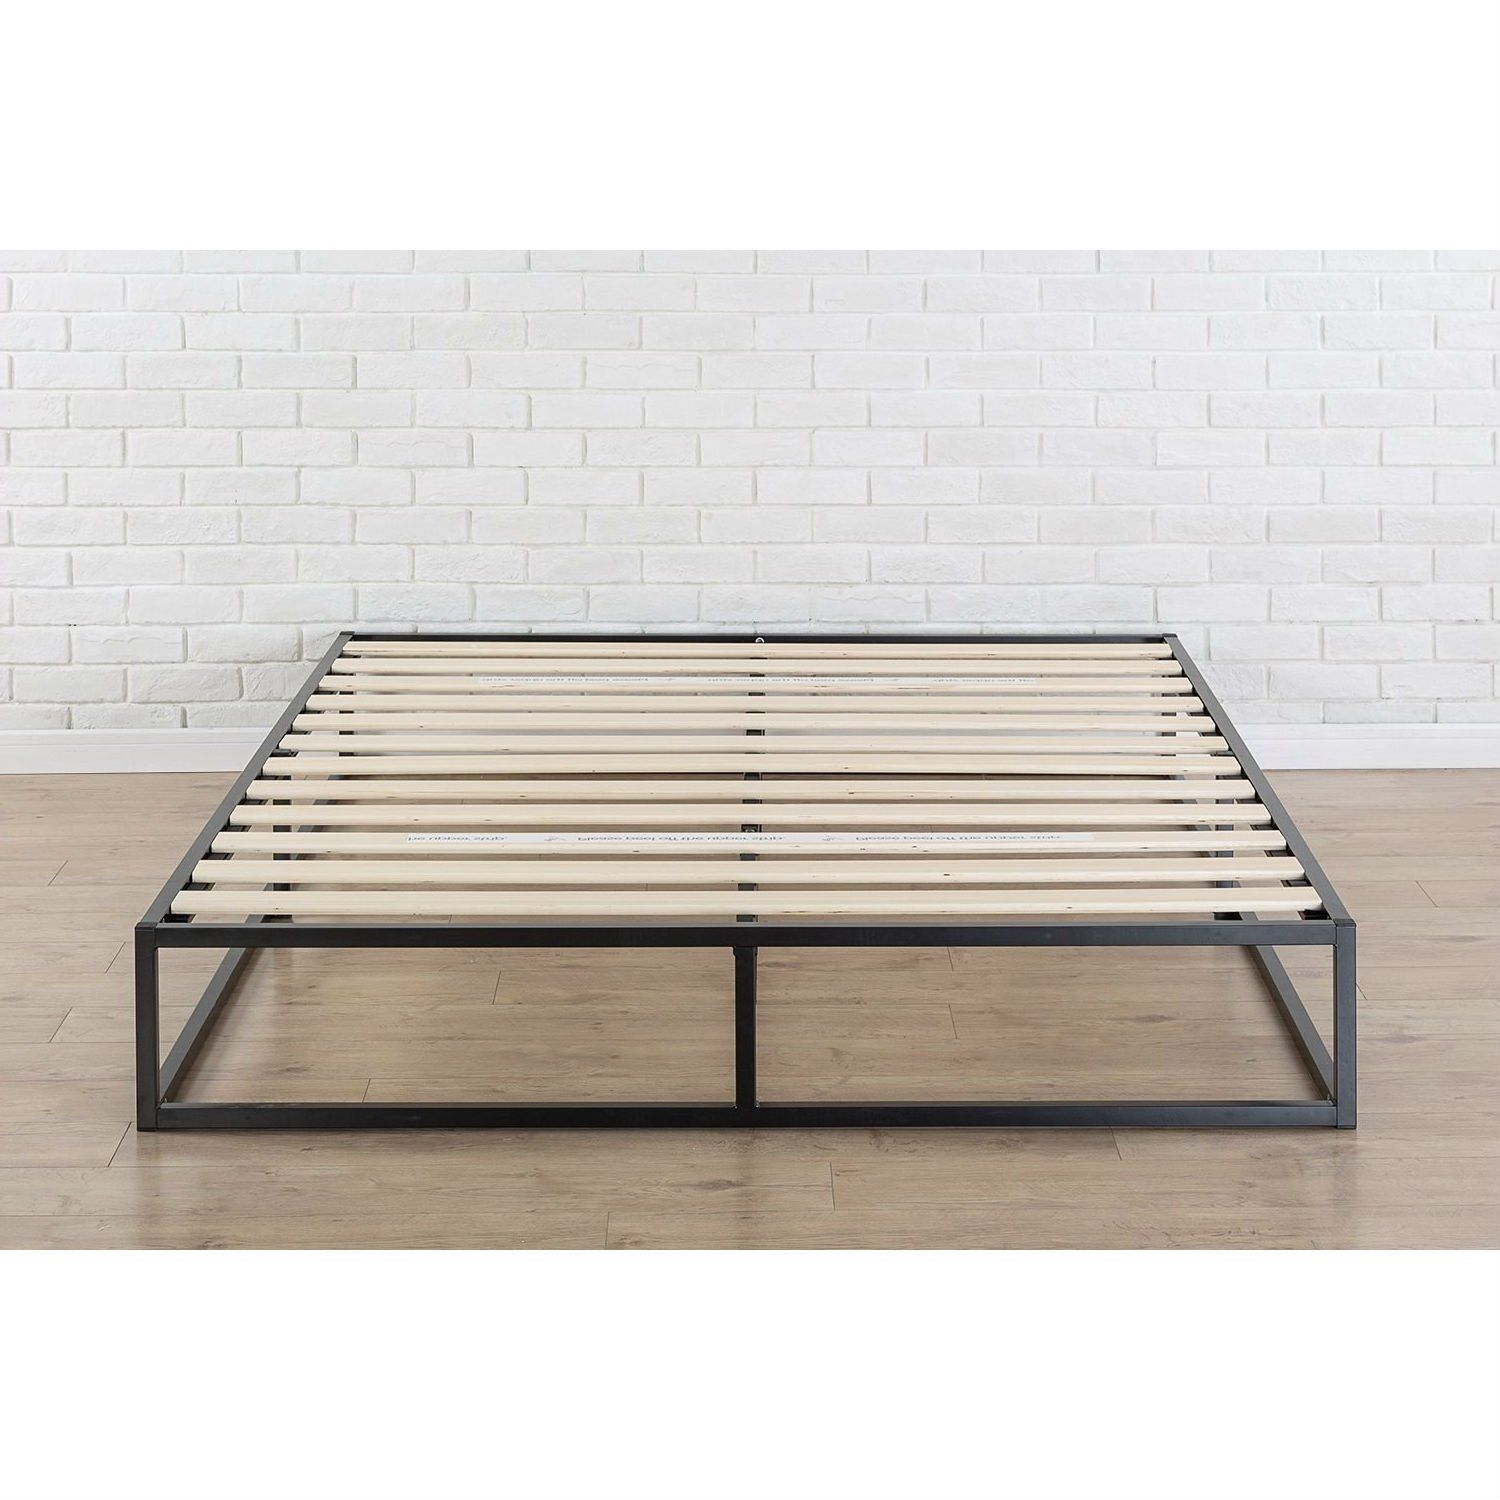 This Queen size Modern 10inch Low Profile Metal Platform